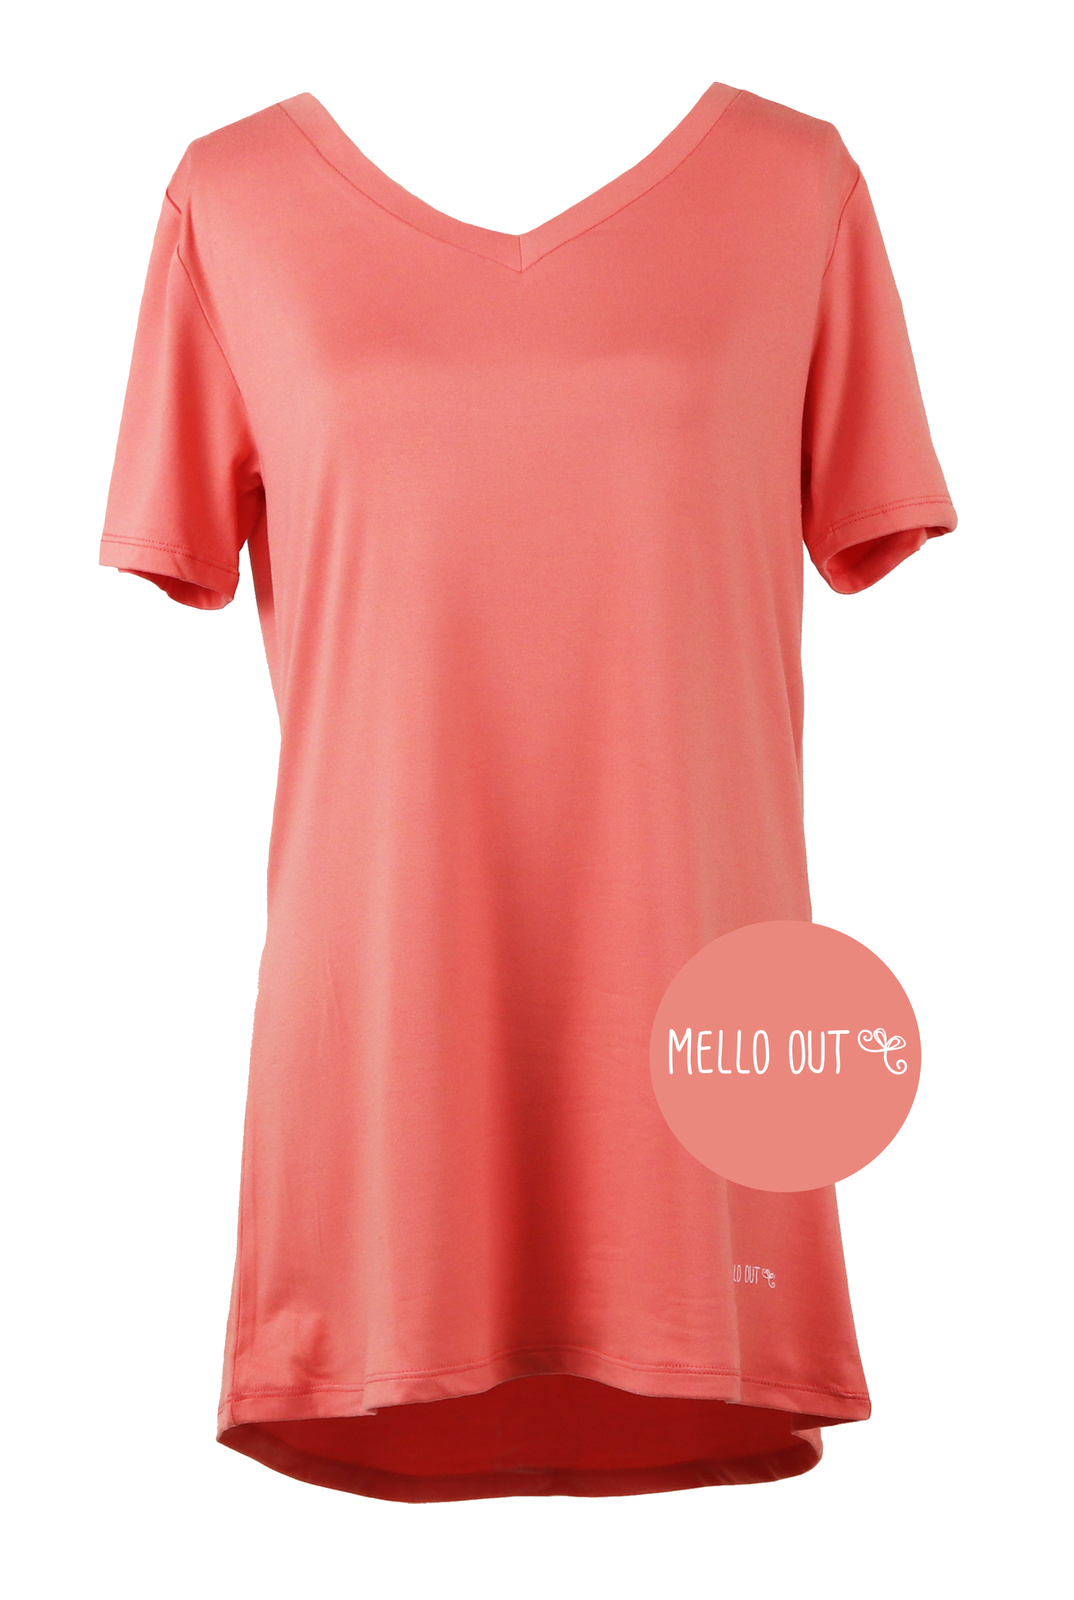 Hello Mello: Mello Out Dream Tee - Extra Large image